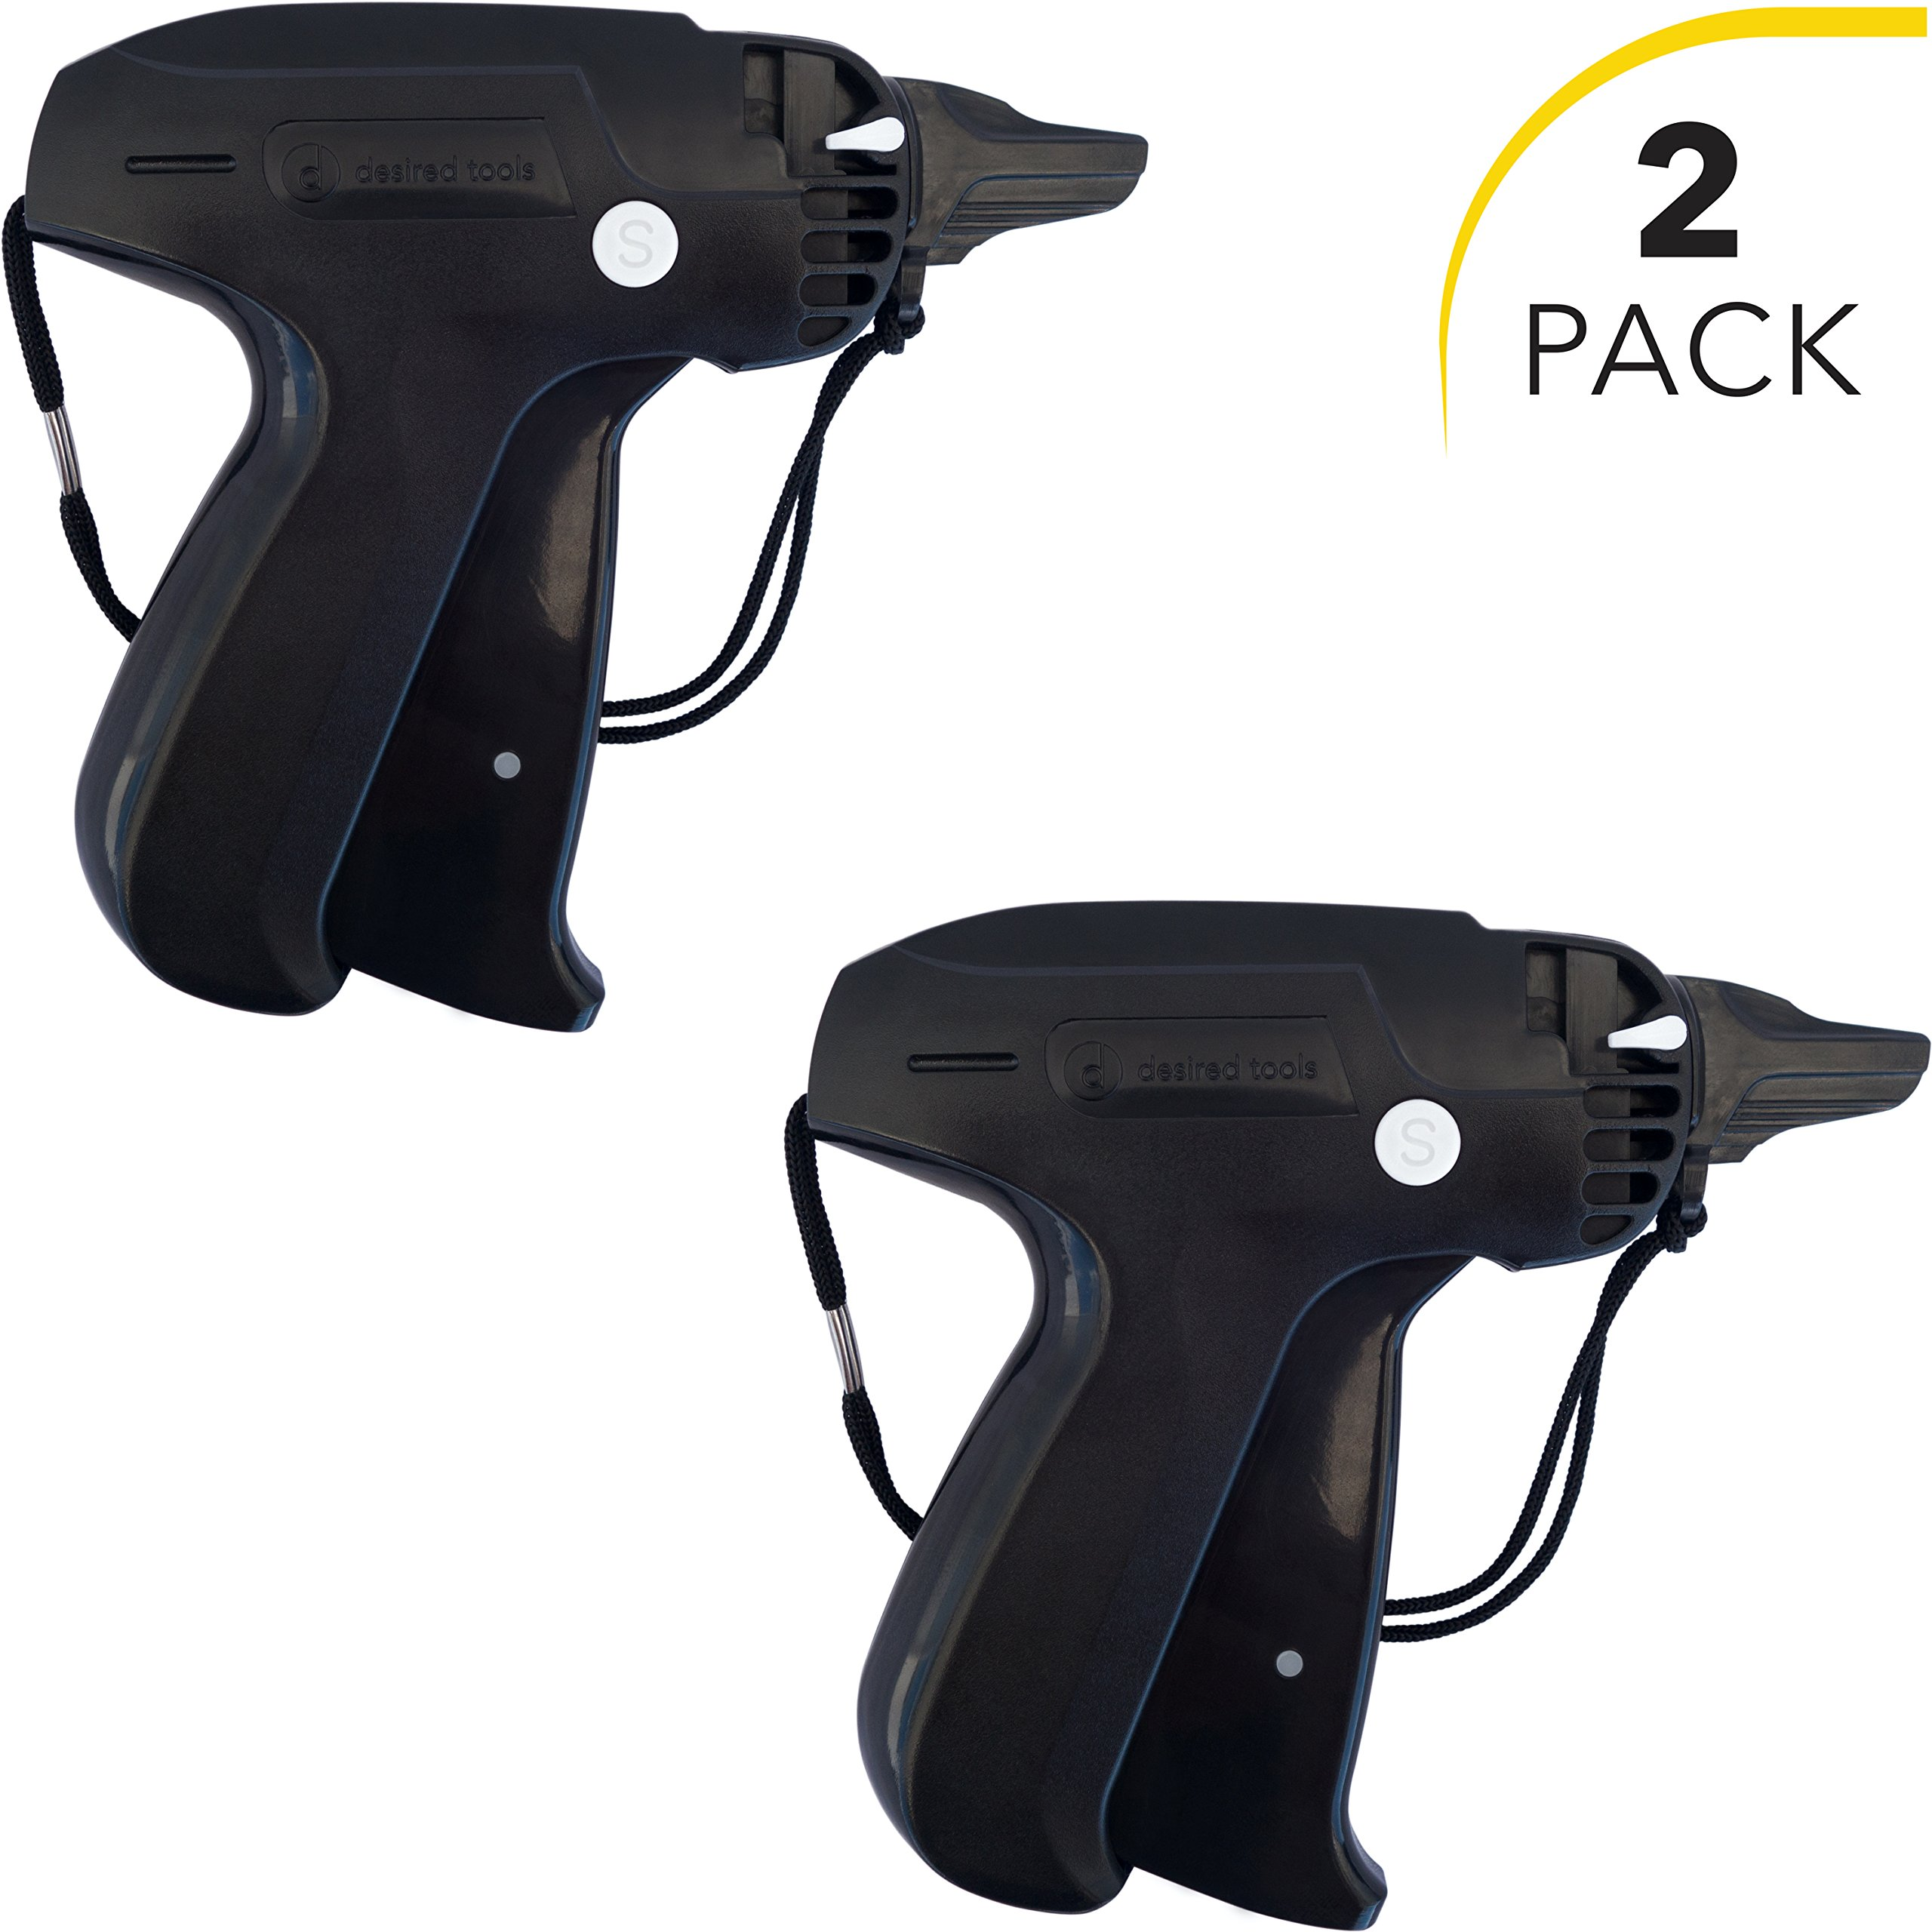 Clothes Tagging Gun Set (2 Pack) by desired tools: Handheld Security and Pricing